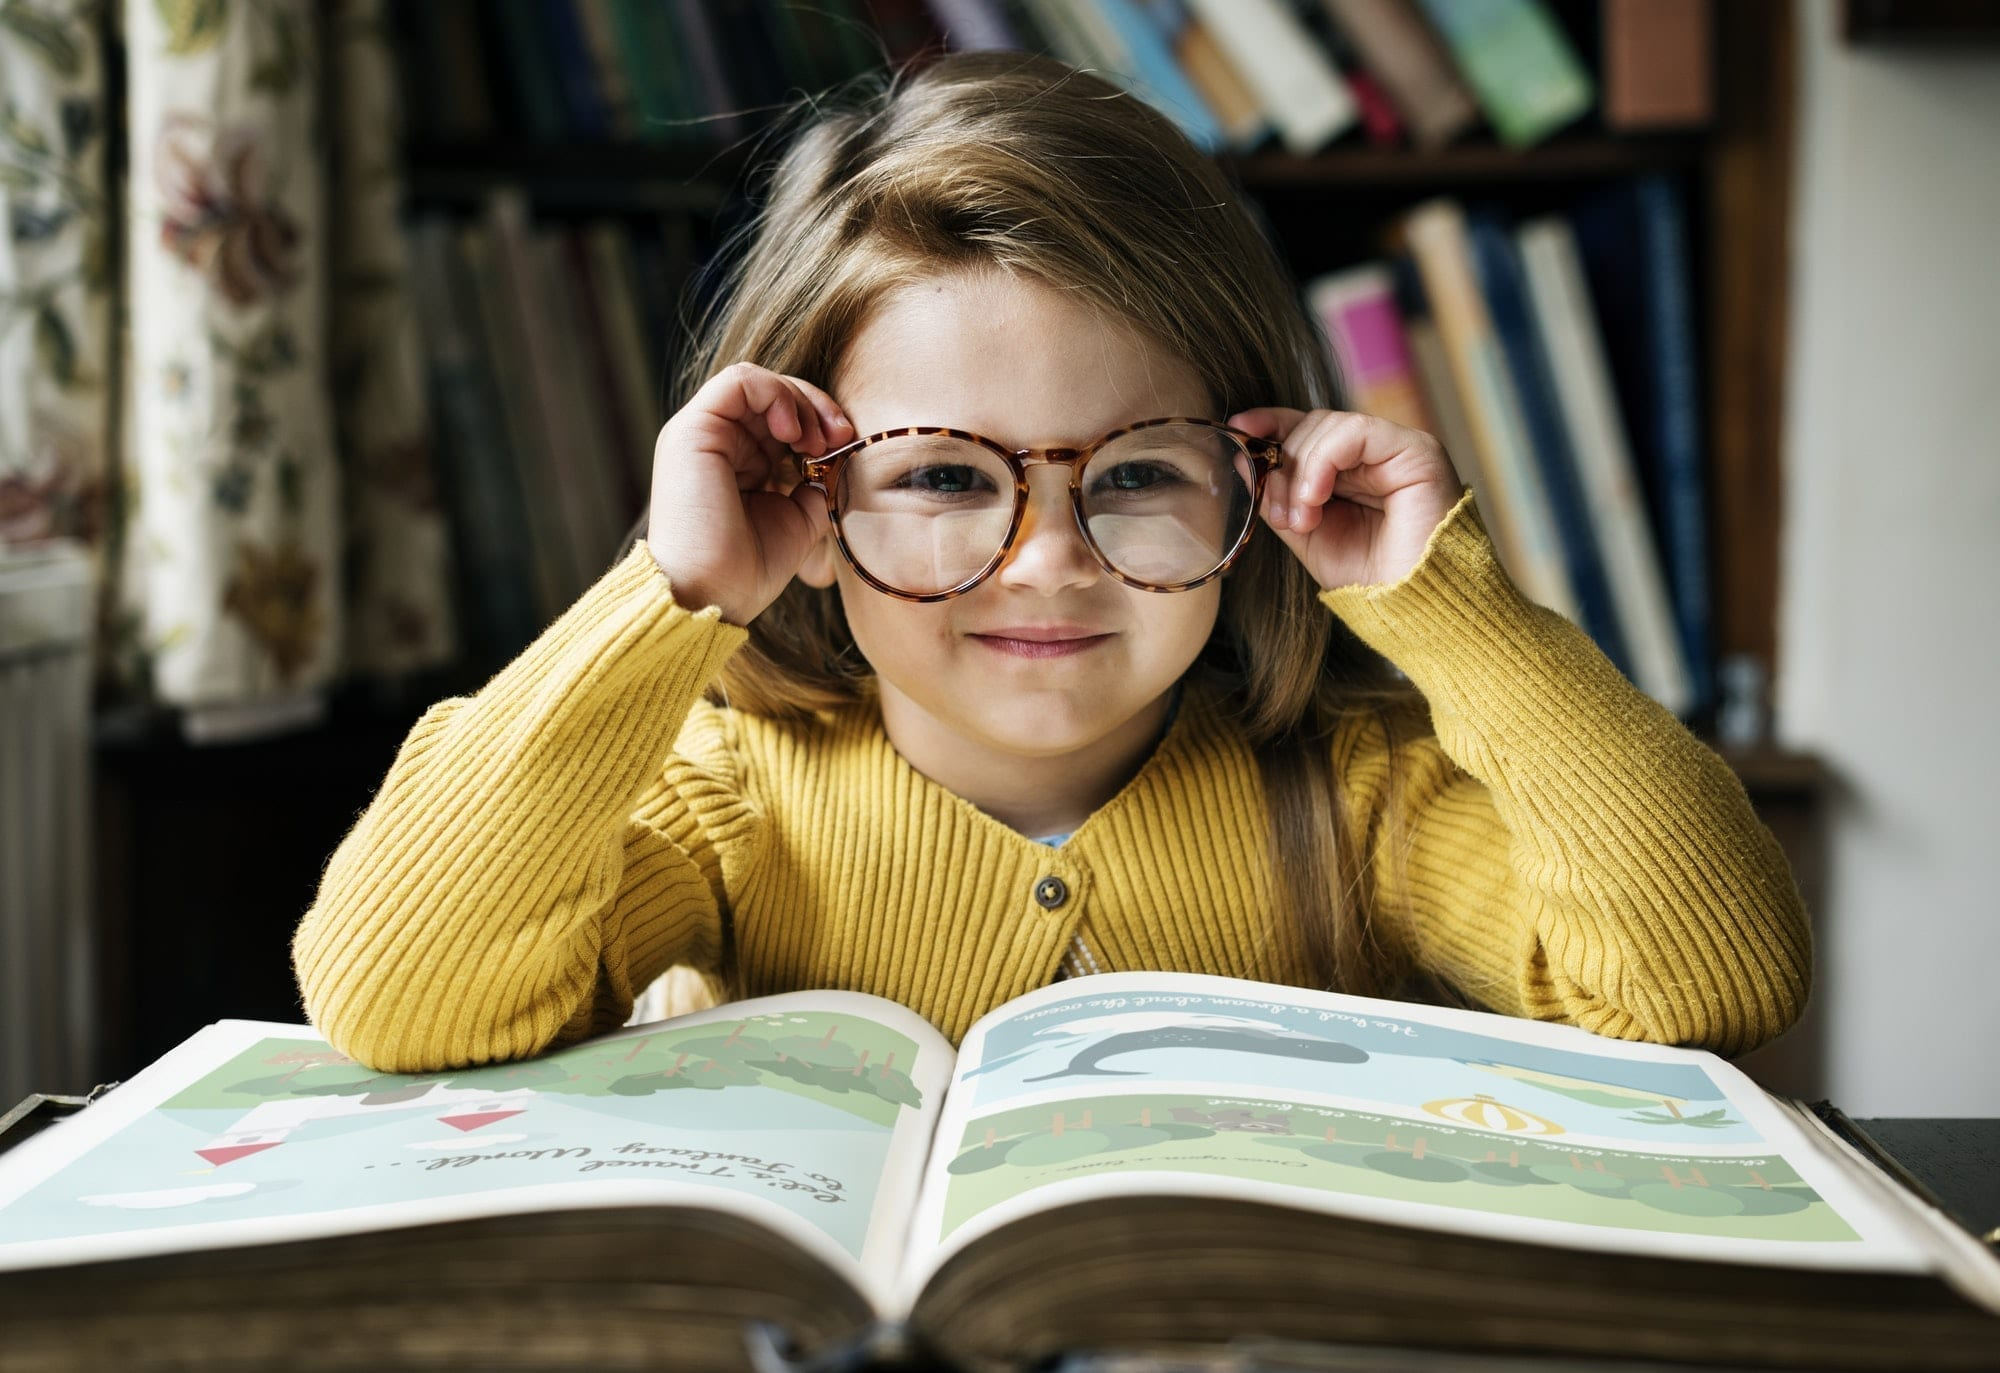 A girl is shown with an open book in front of her, thus satisfying the first tip of presentations... to tell a story!